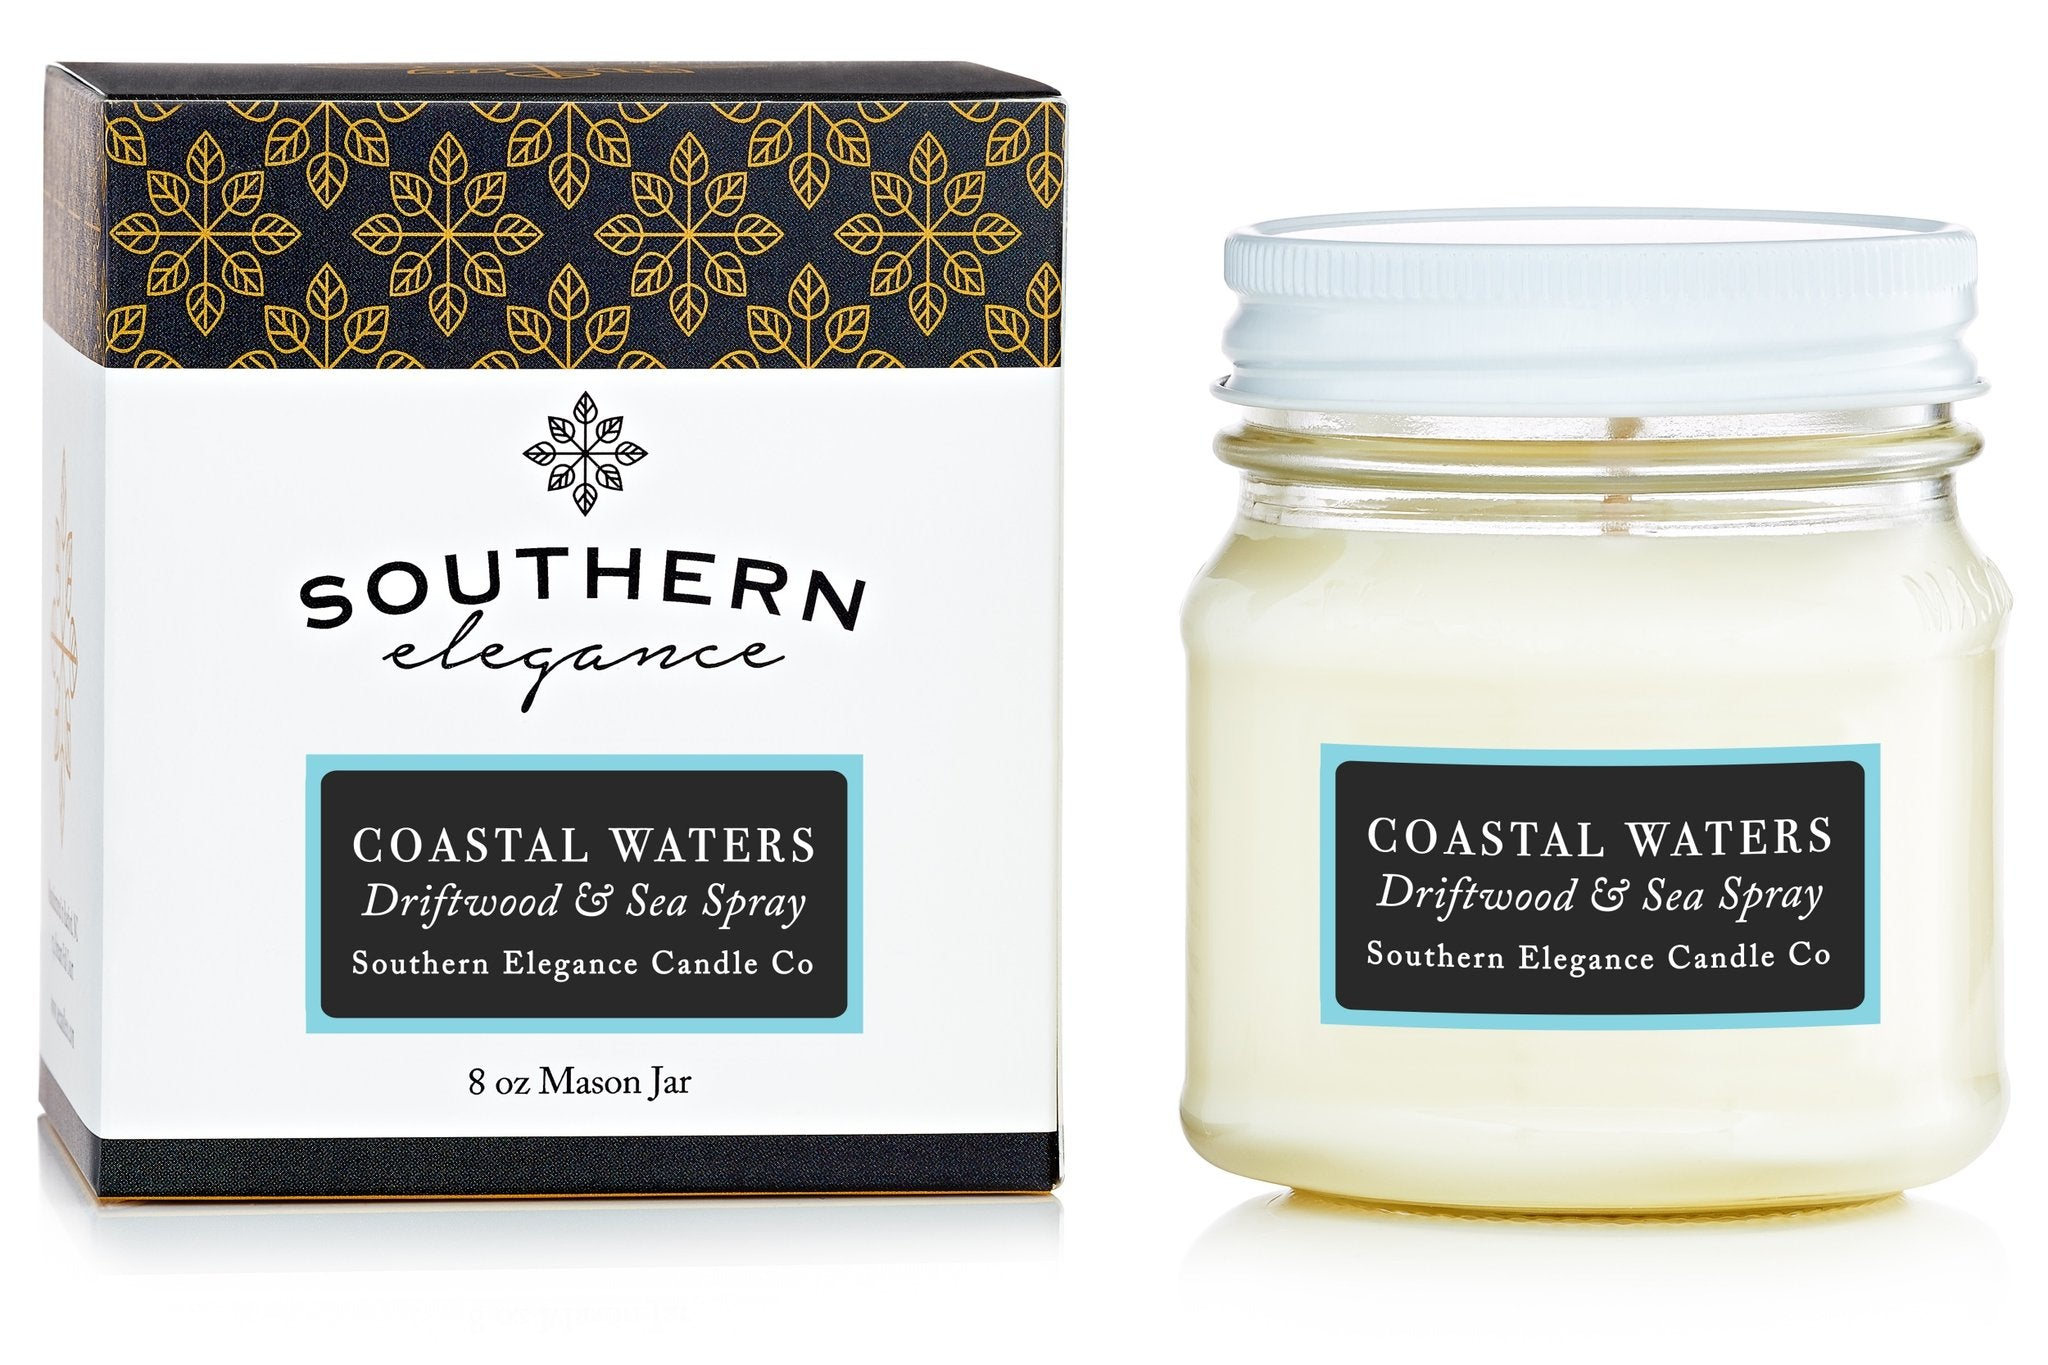 Southern Elegance Candle Co. - Coastal Waters: Driftwood & Sea Spray (Mason)